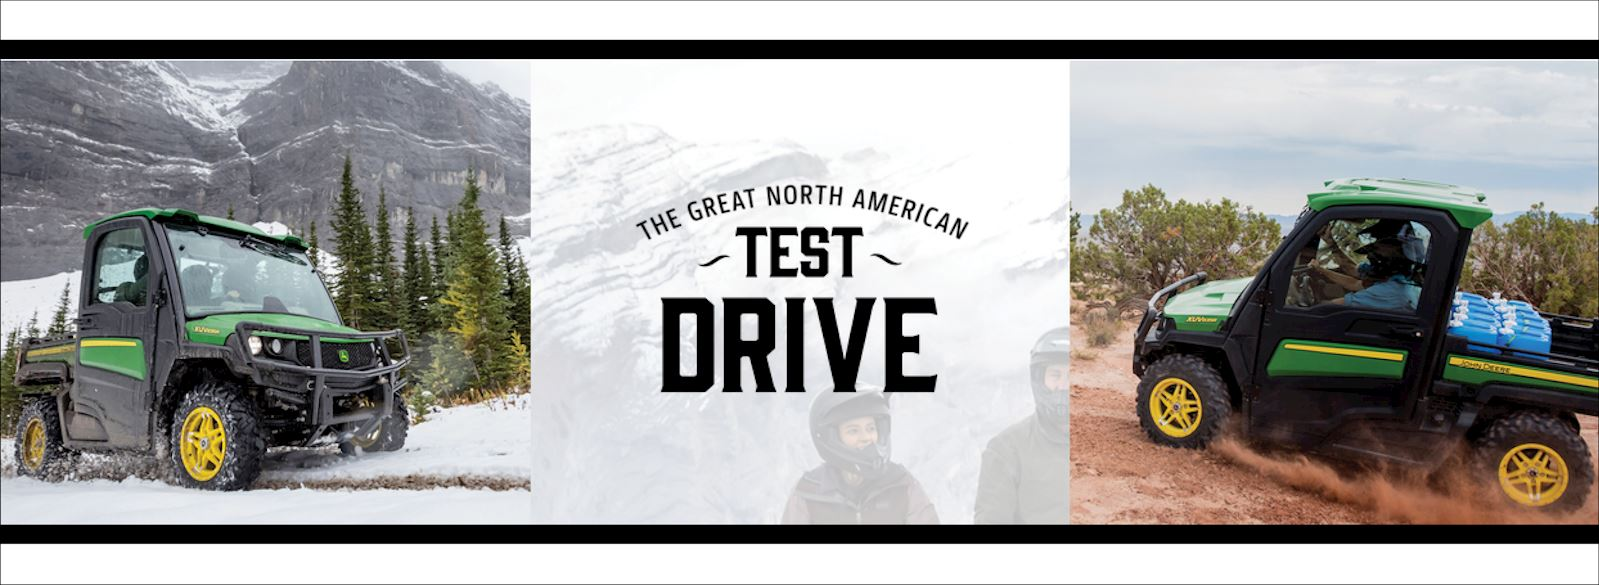 The Great North American Test Drive